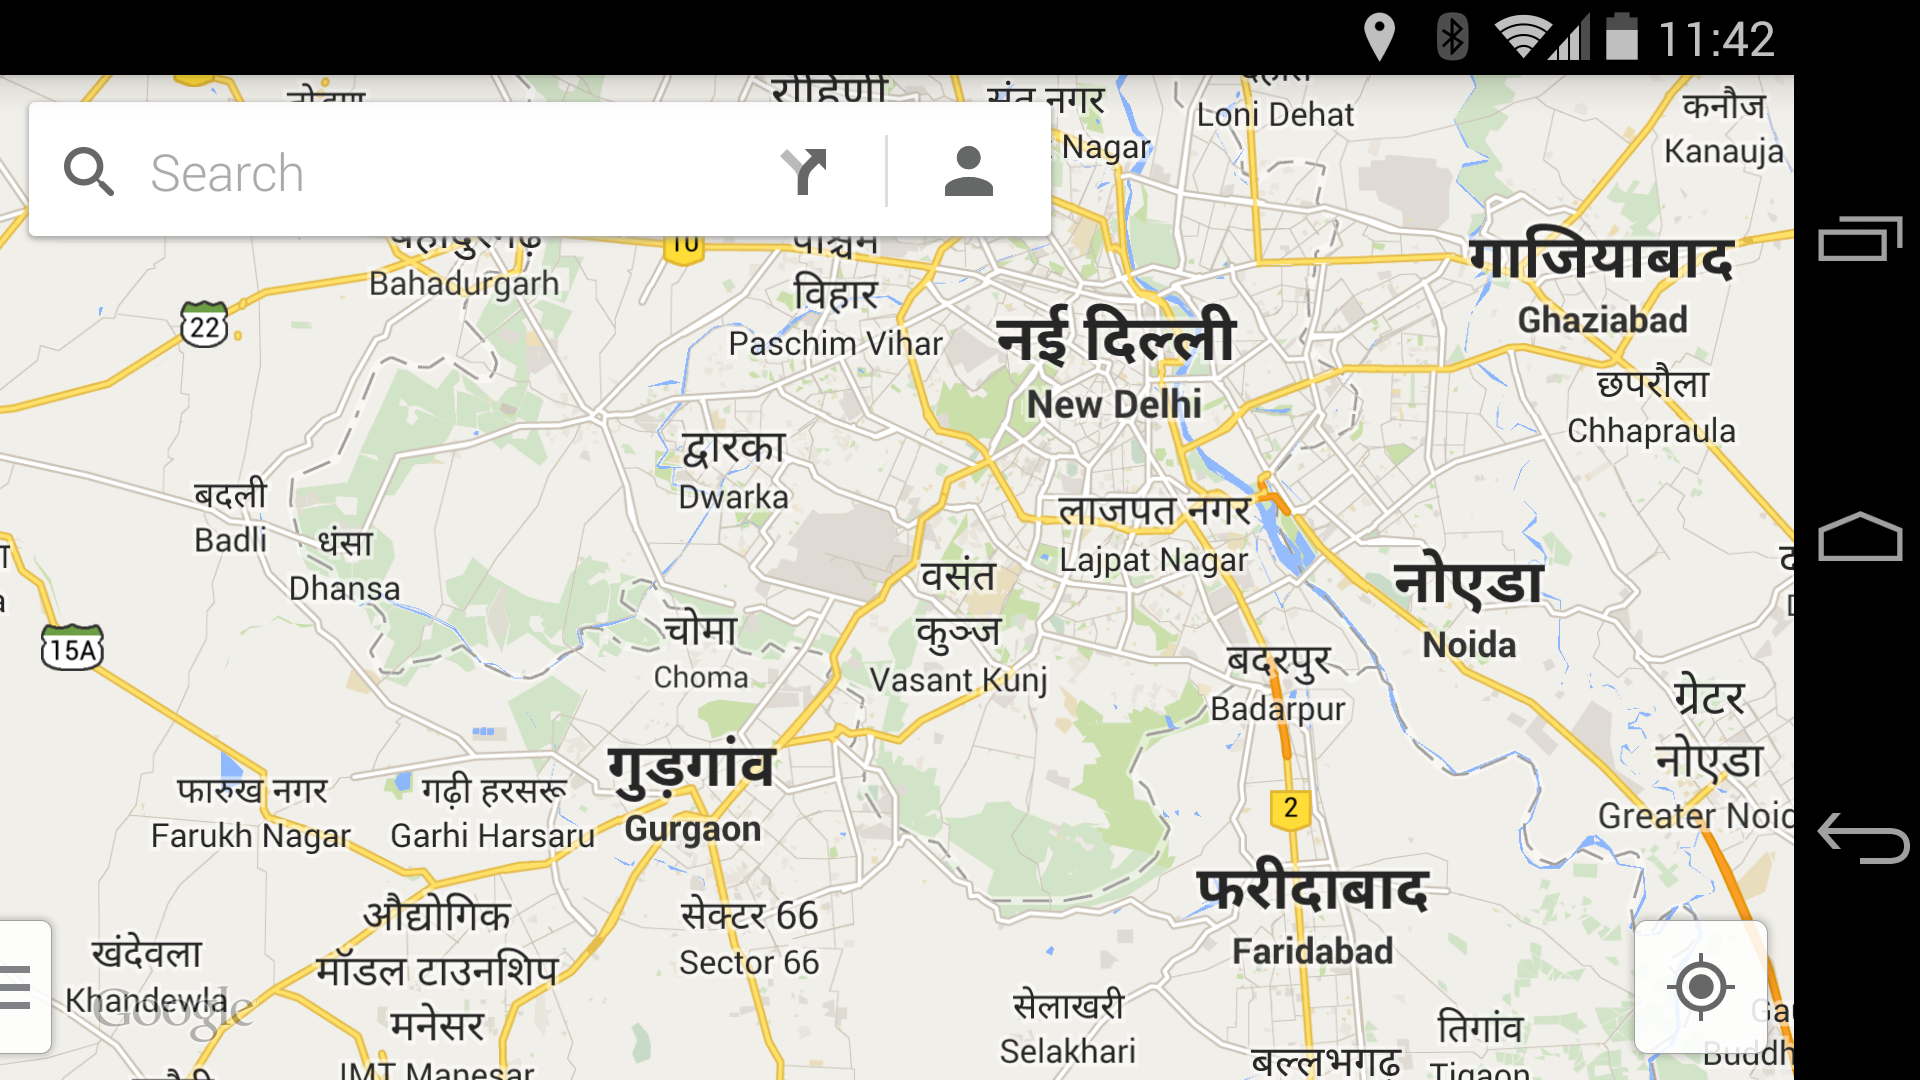 Hindi Language Support Comes To Google Maps Mobile App And ... on india map hinduism, india map english, india map history, india map urdu, india map maharashtra, india map rajasthan, india map punjabi, india map delhi, india map states and rivers, india map mumbai, india map bangla, india map state names, india cities map, india map asia, india map art, india map in tamil, india map indo-gangetic plain, india map nepal, india map geography, india map gujarat,